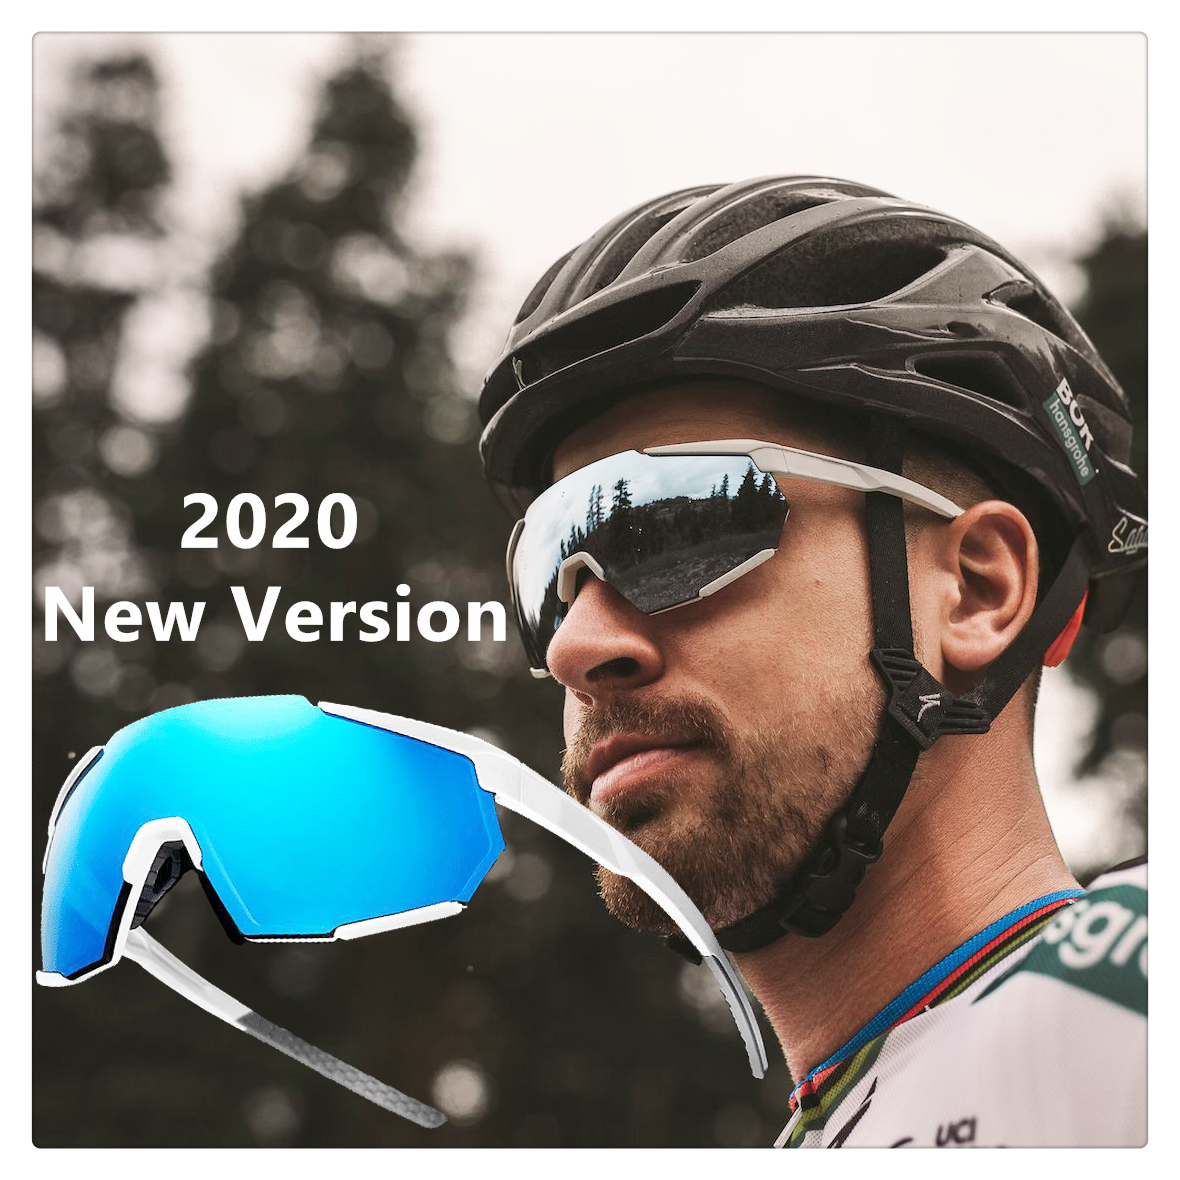 2020 Peter Limited 100 RP Sports Bicycle Bike Sunglasses Gafas Ciclismo MTB Cycling Glasses Eyewear Sunglasses Racetrap100